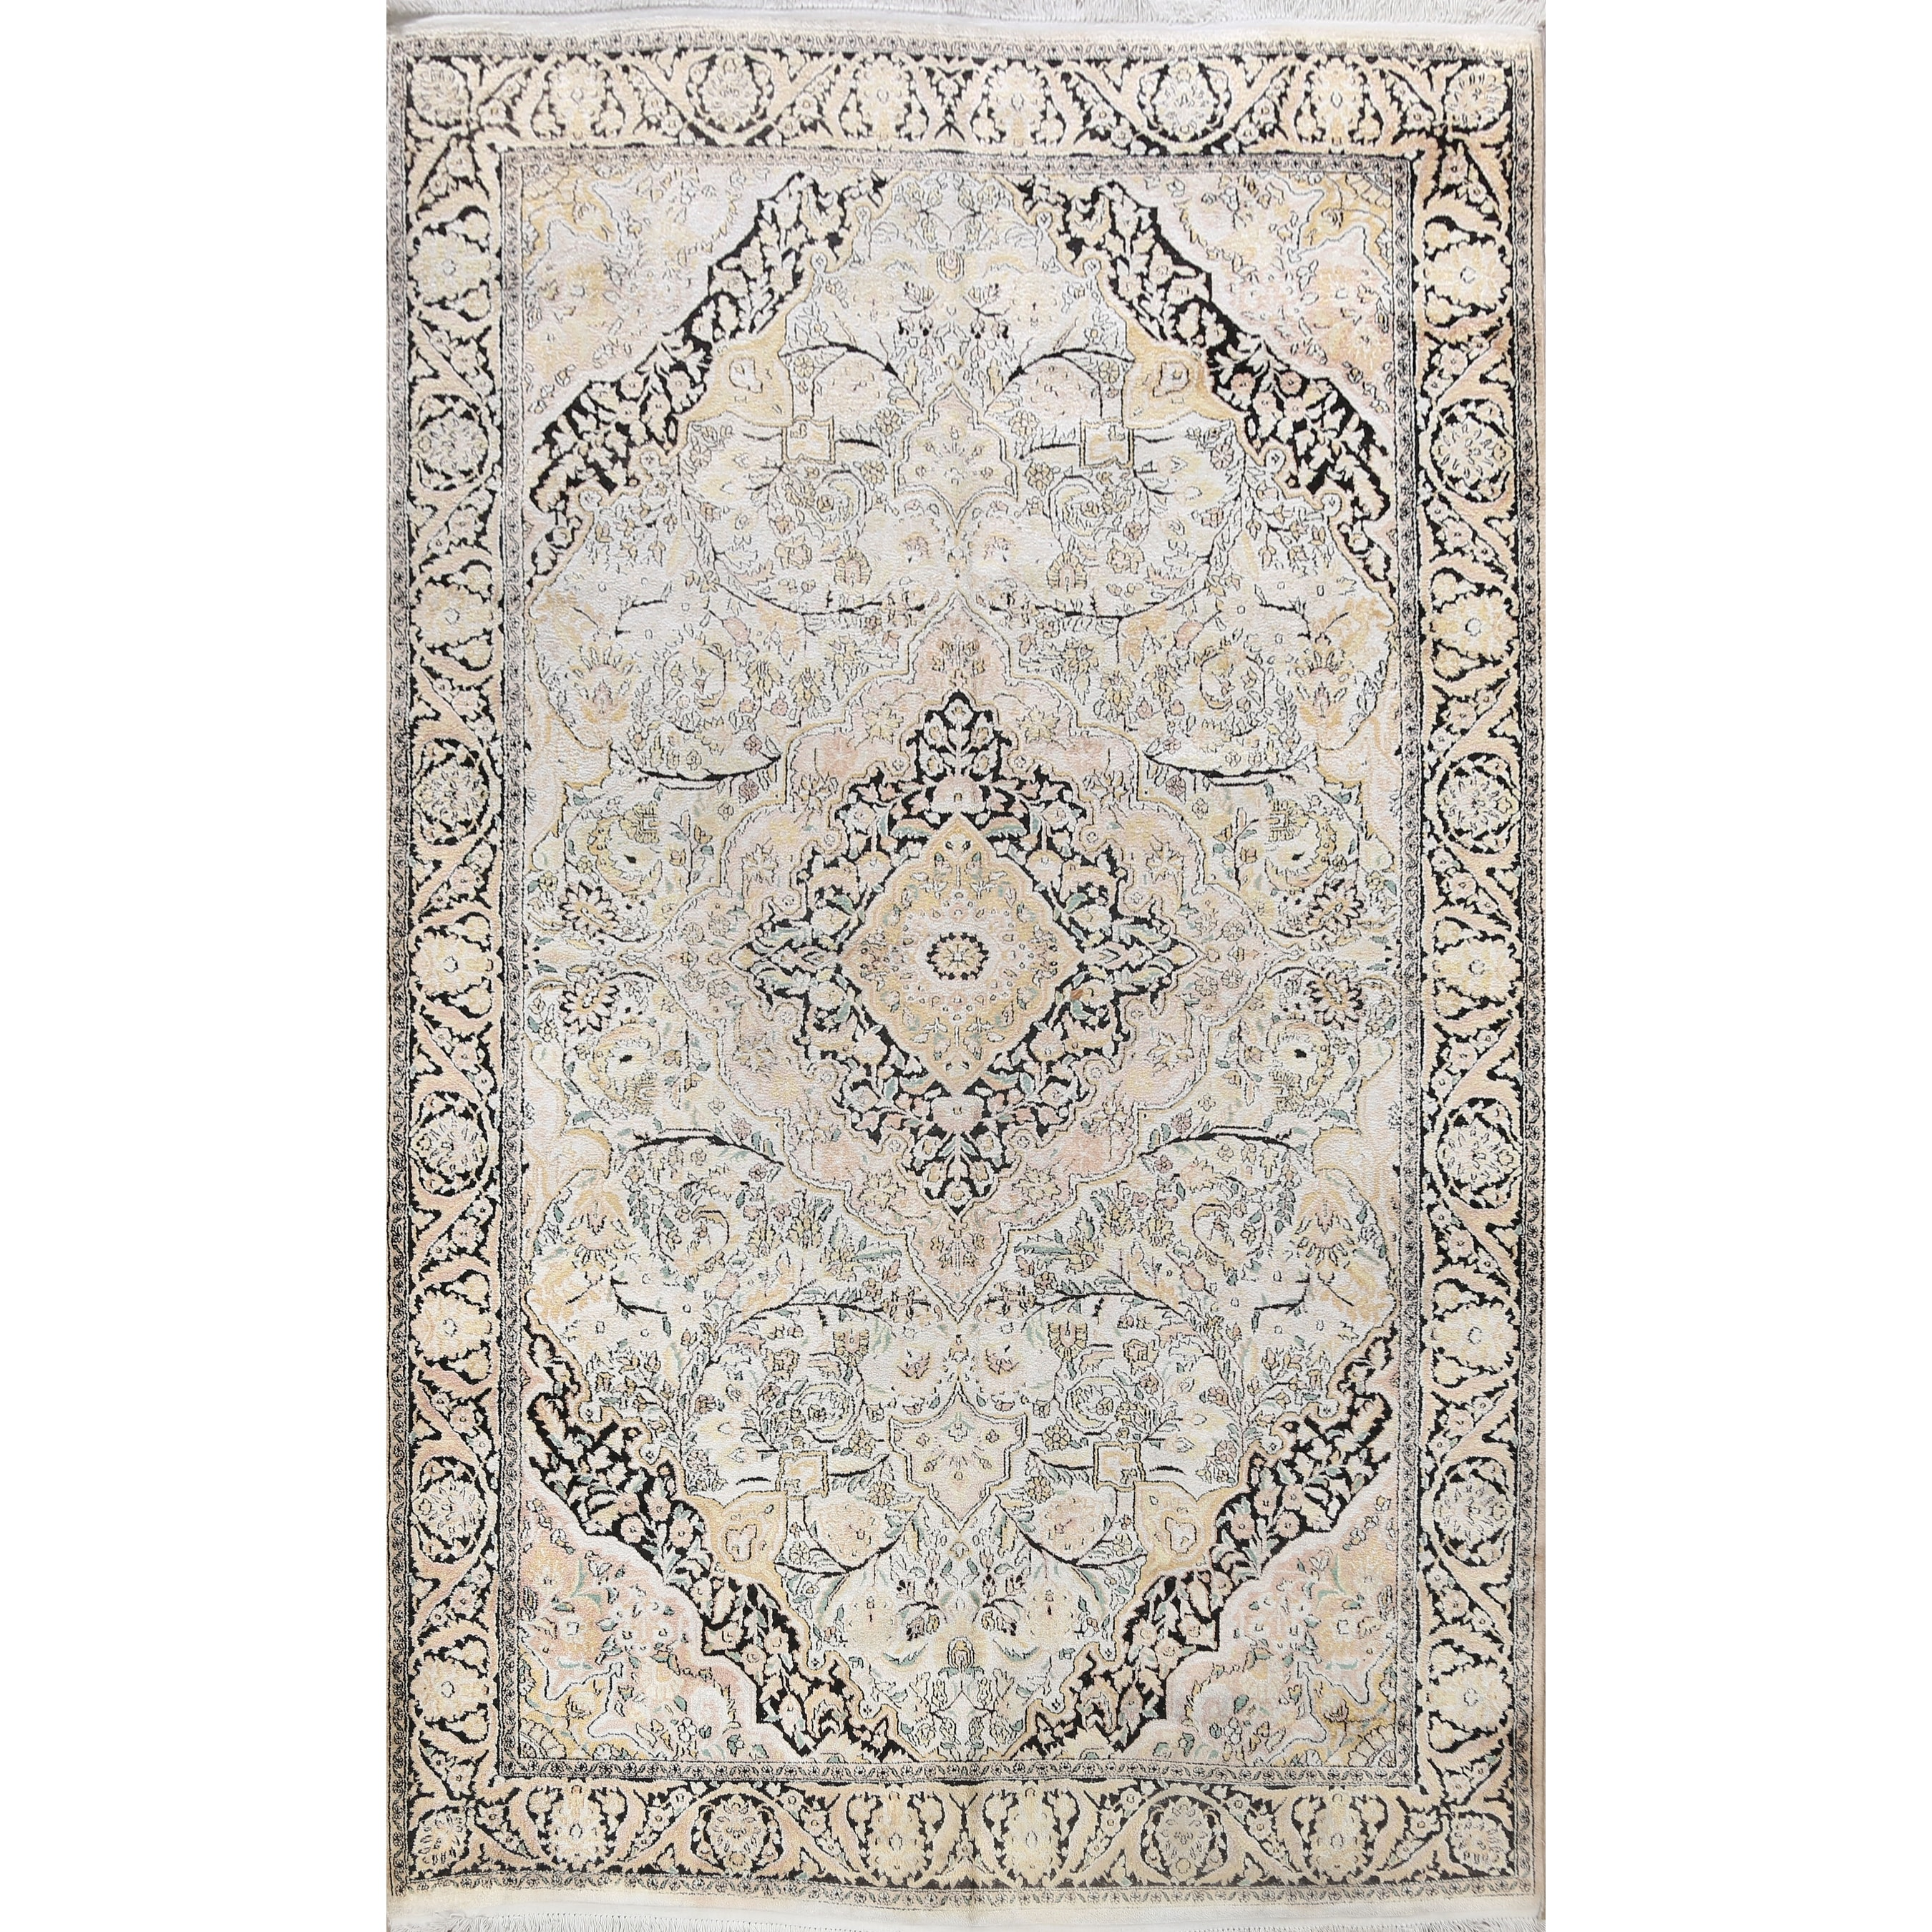 Area Rug Hand Knotted Home Decor Carpet